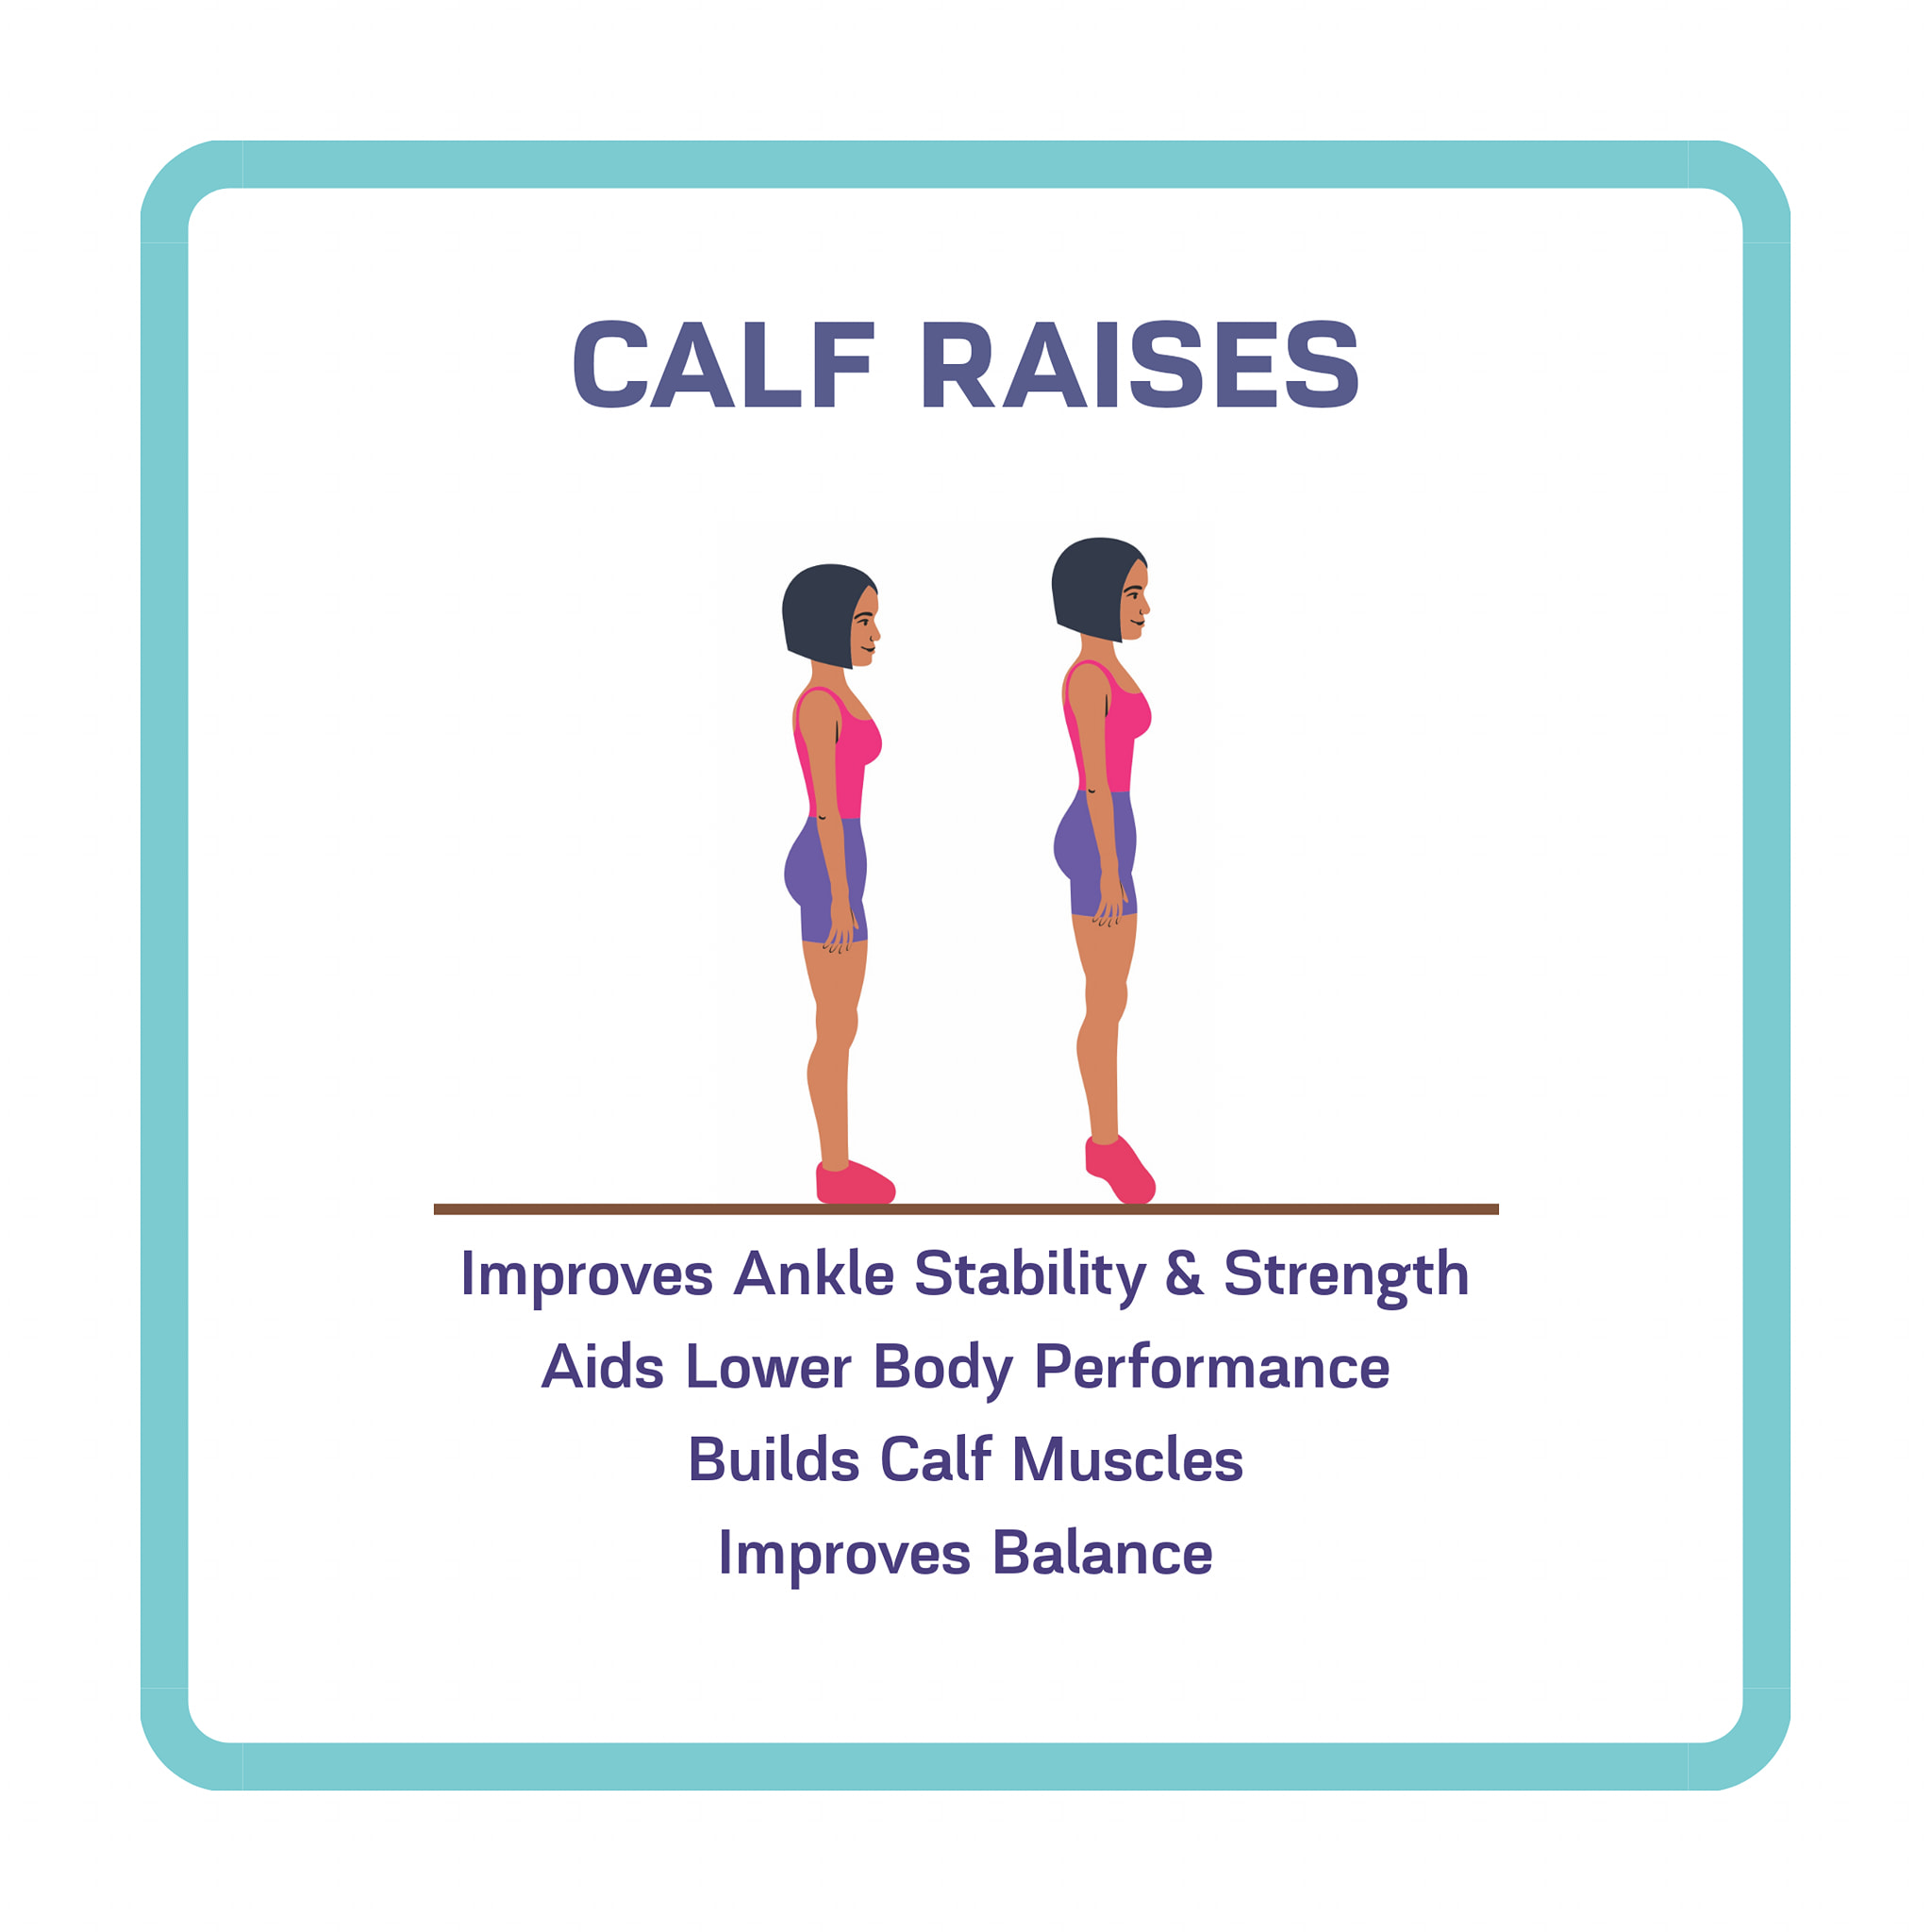 calf raises for calf muscles and lower body balance